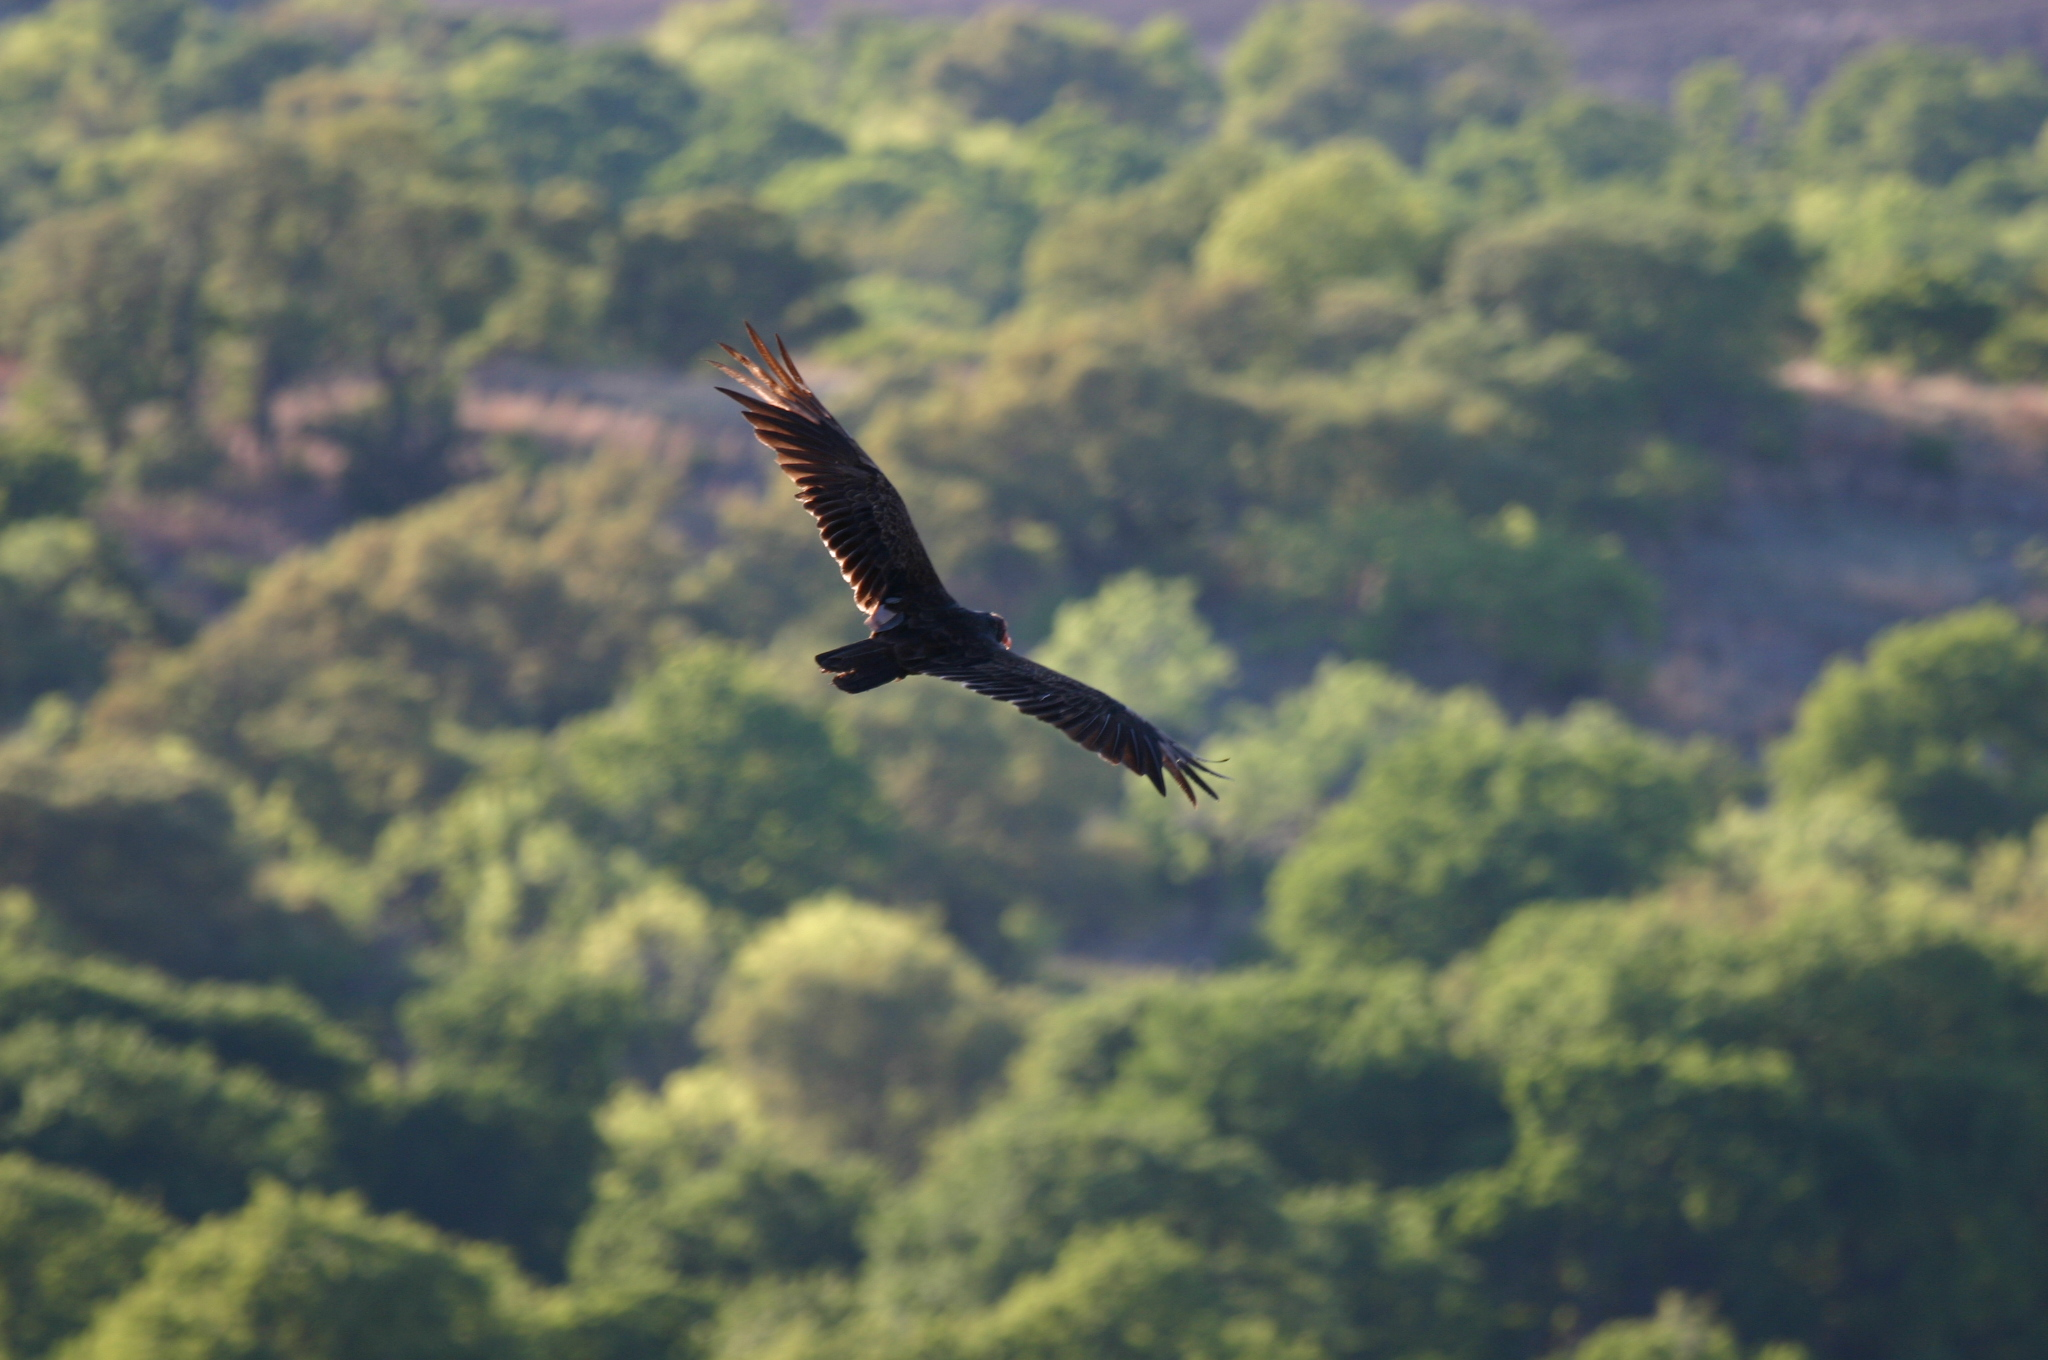 Aerial_View_of_Flying_Eagle_over_Green_Forested_Land